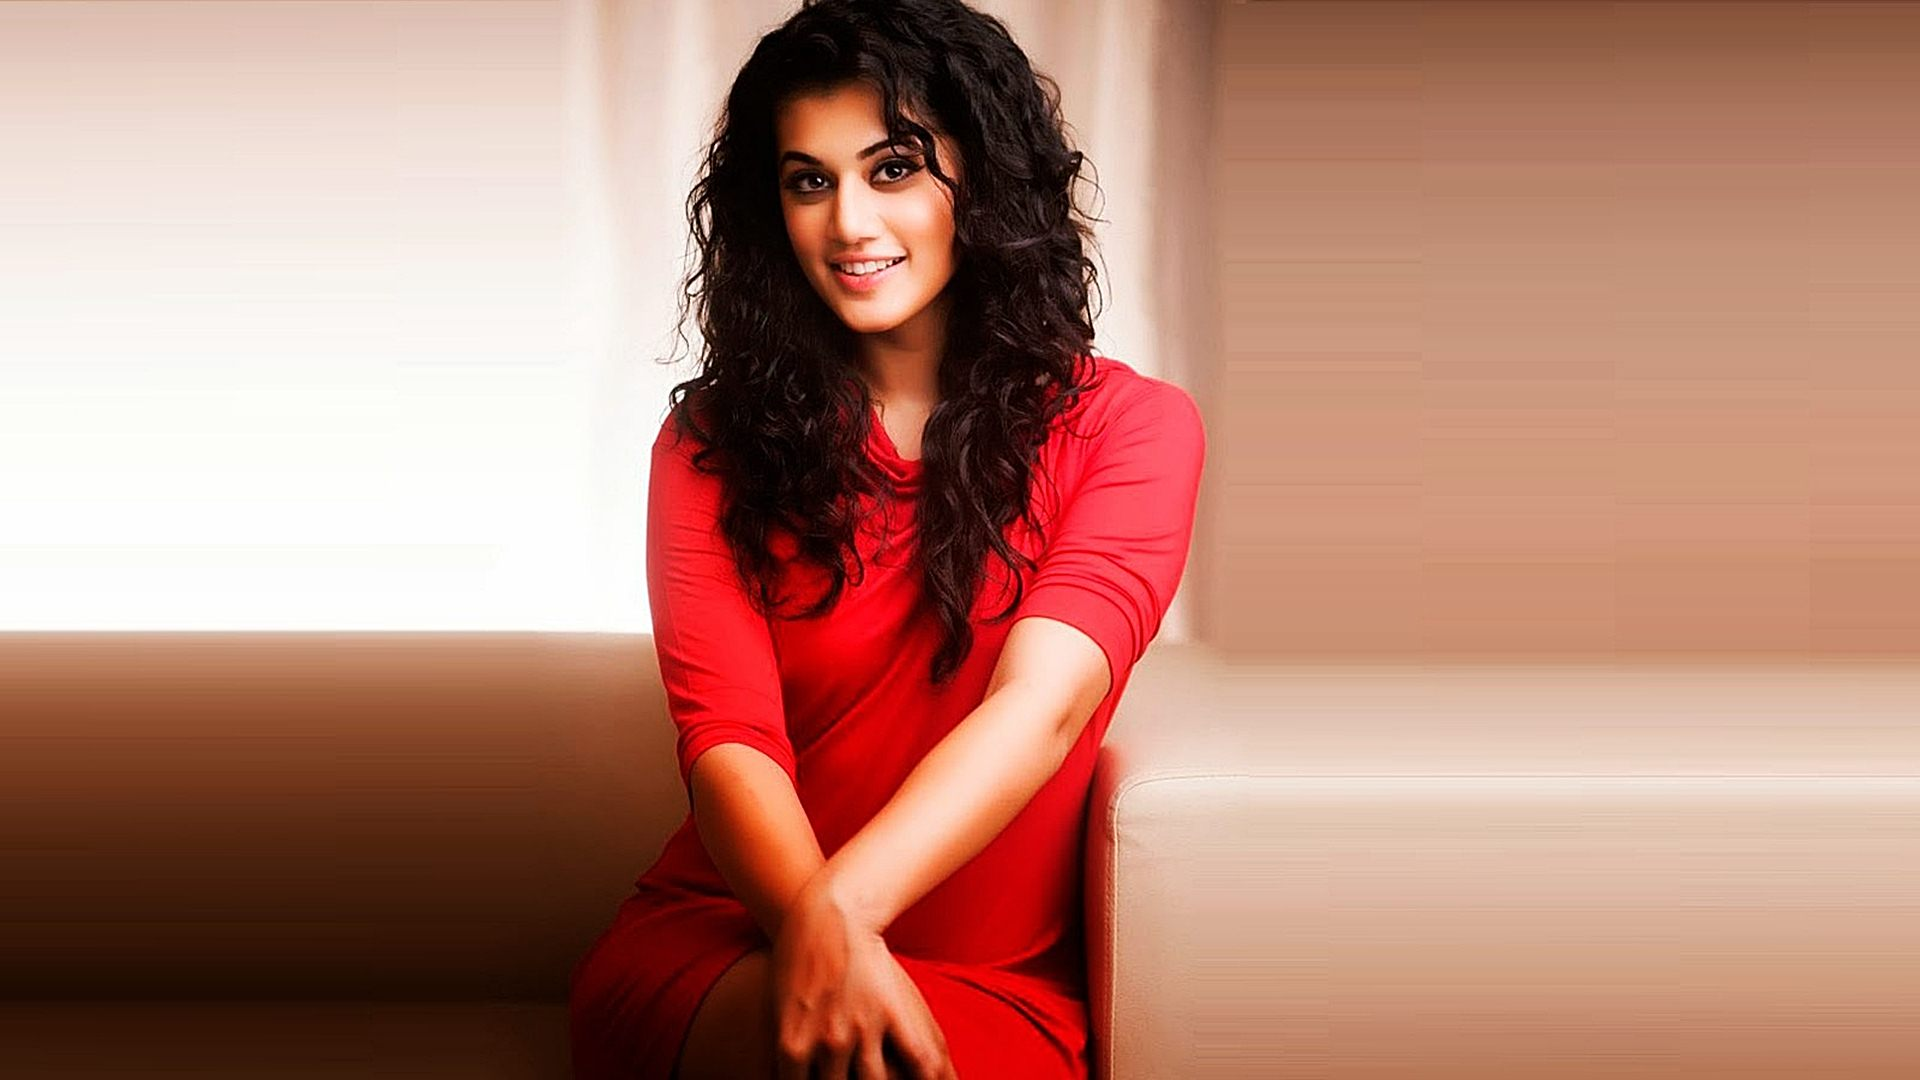 High Resolution Wallpaper | Taapsee Pannu 1920x1080 px